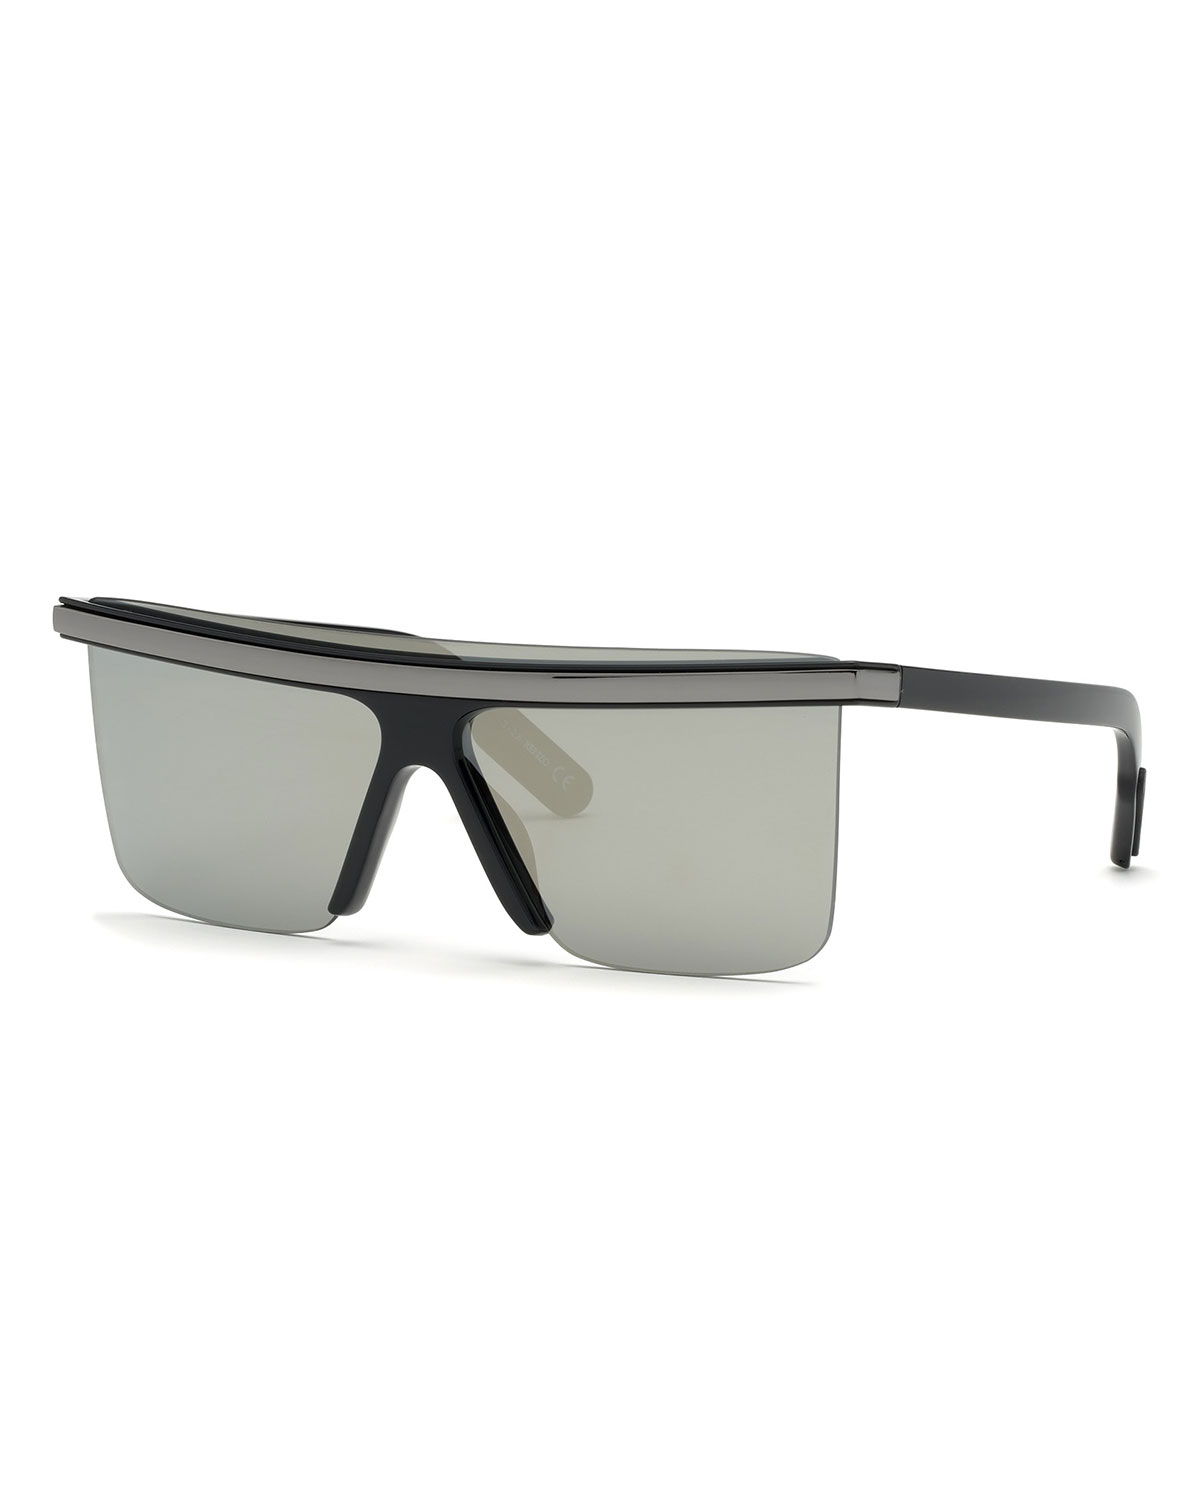 Kenzo Men's Flat-Top Sunglasses w/ Metal Trim